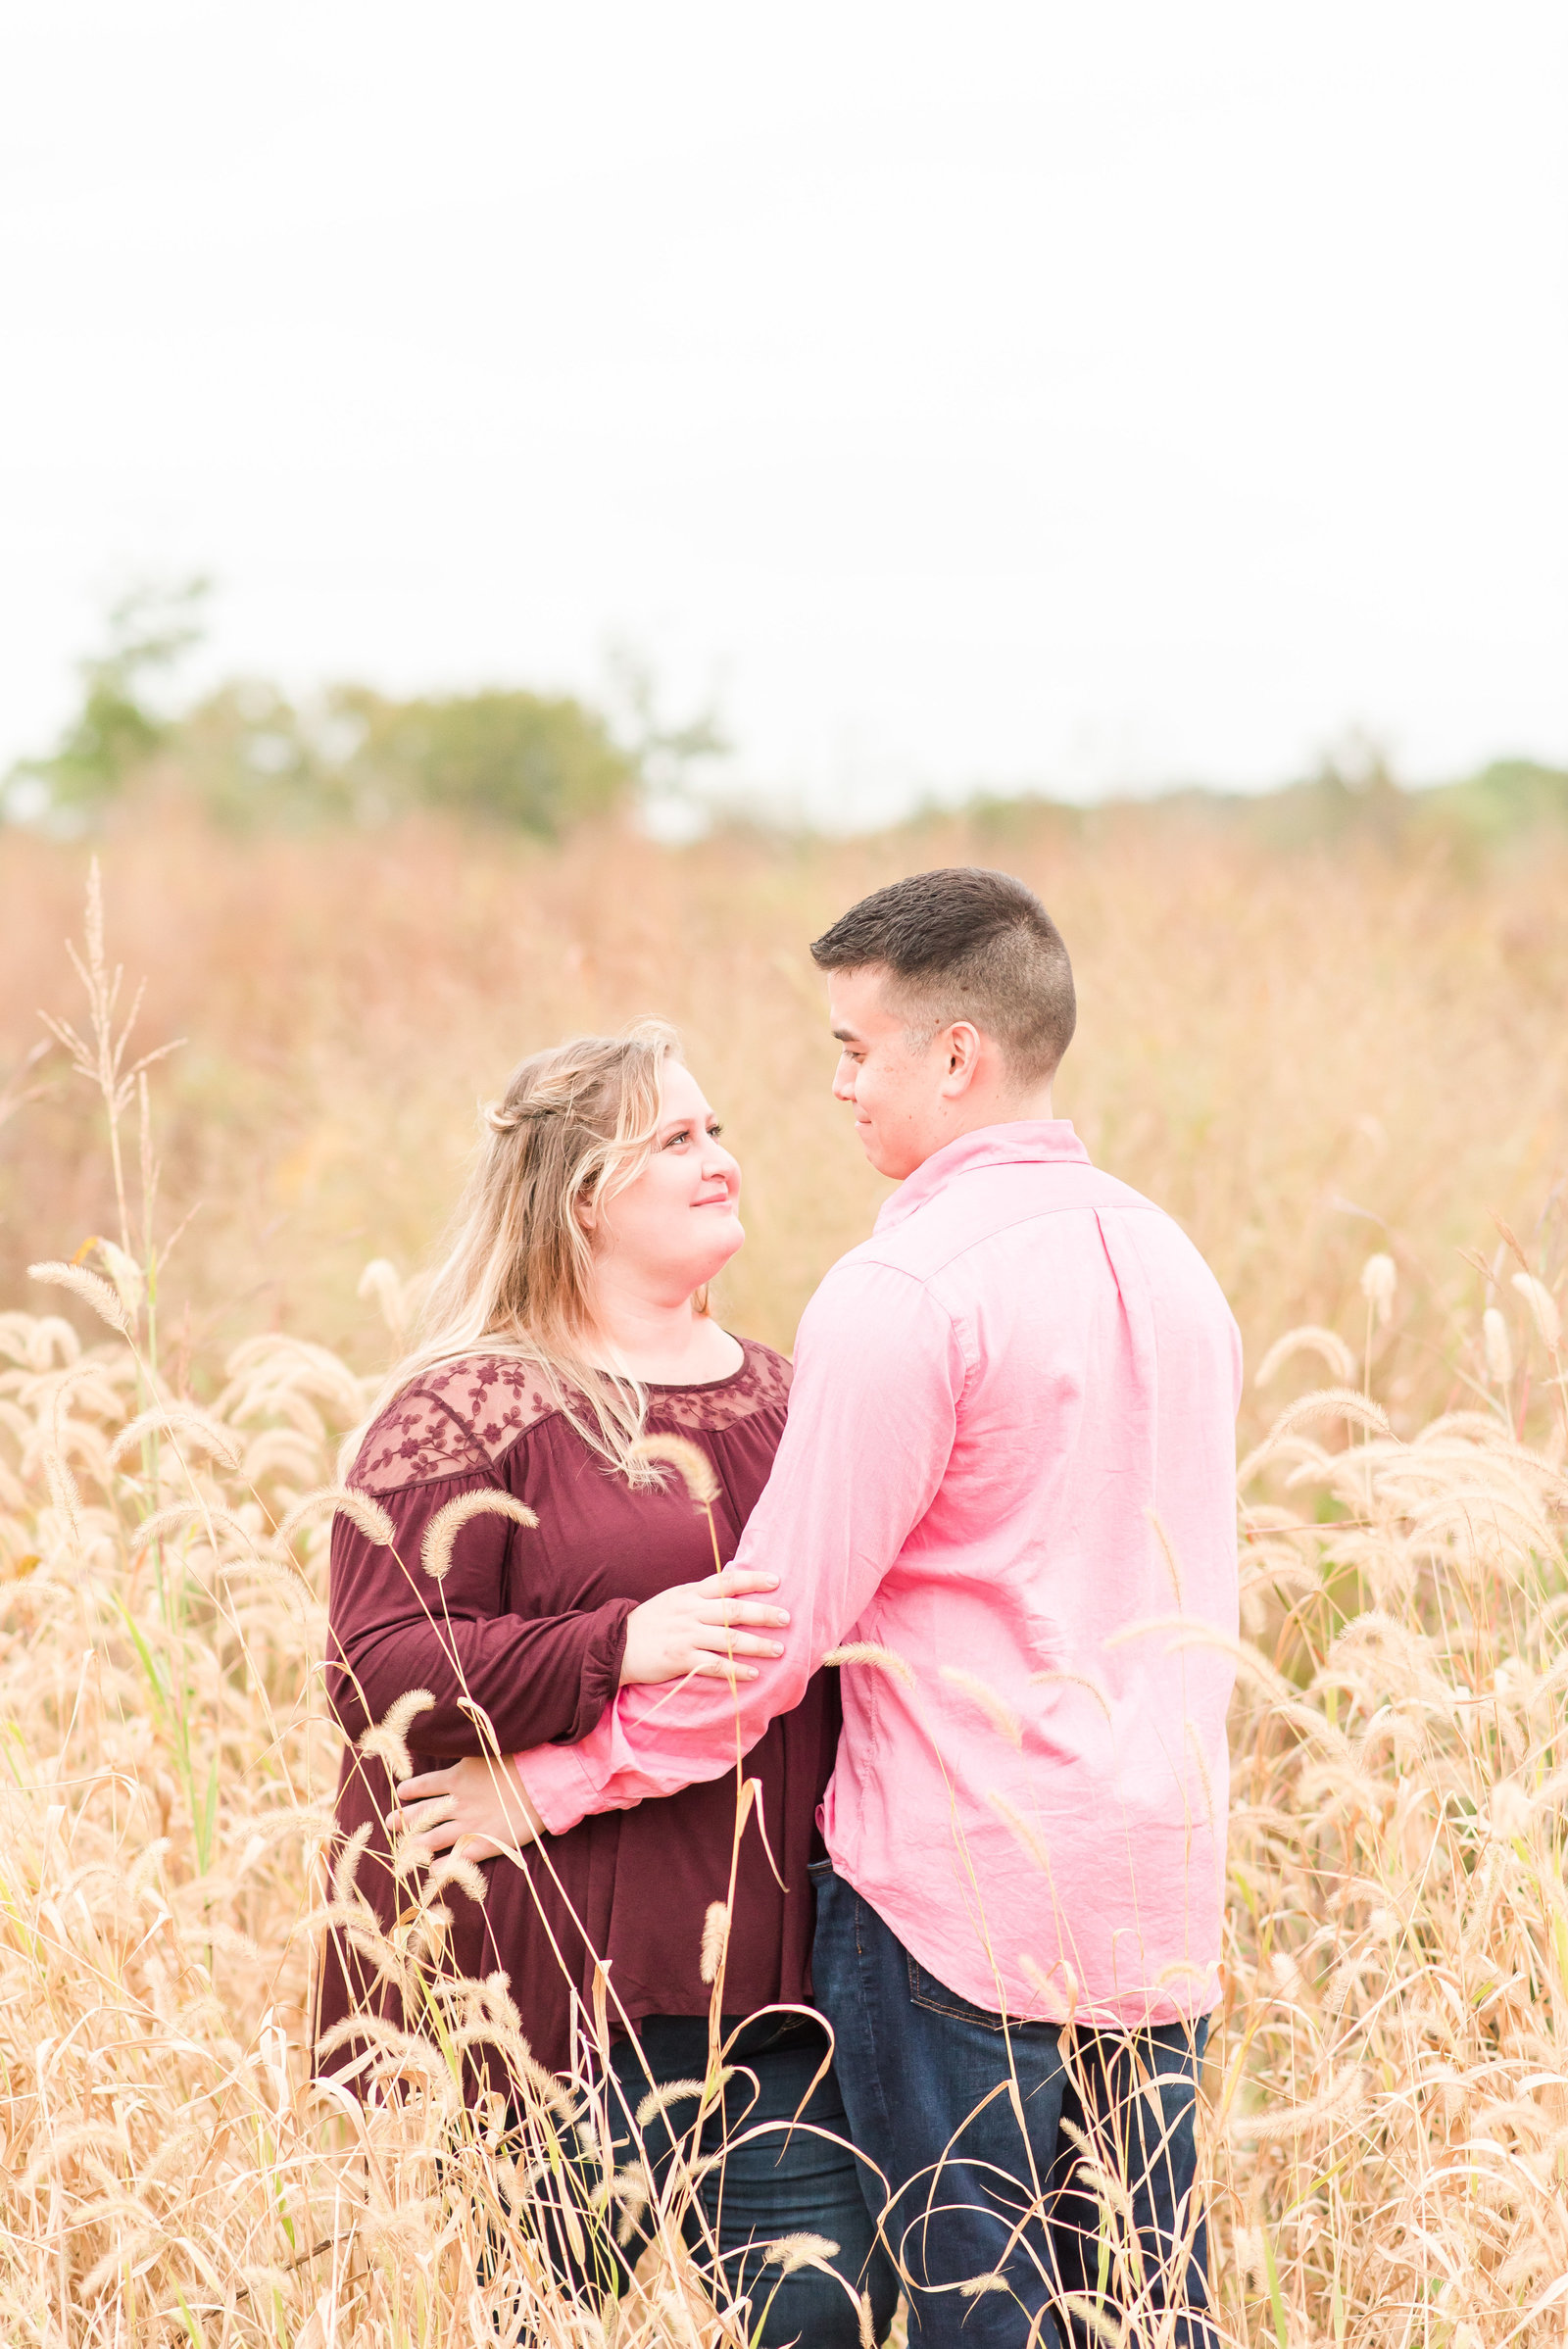 Engagement Session at Beckley Creek Park